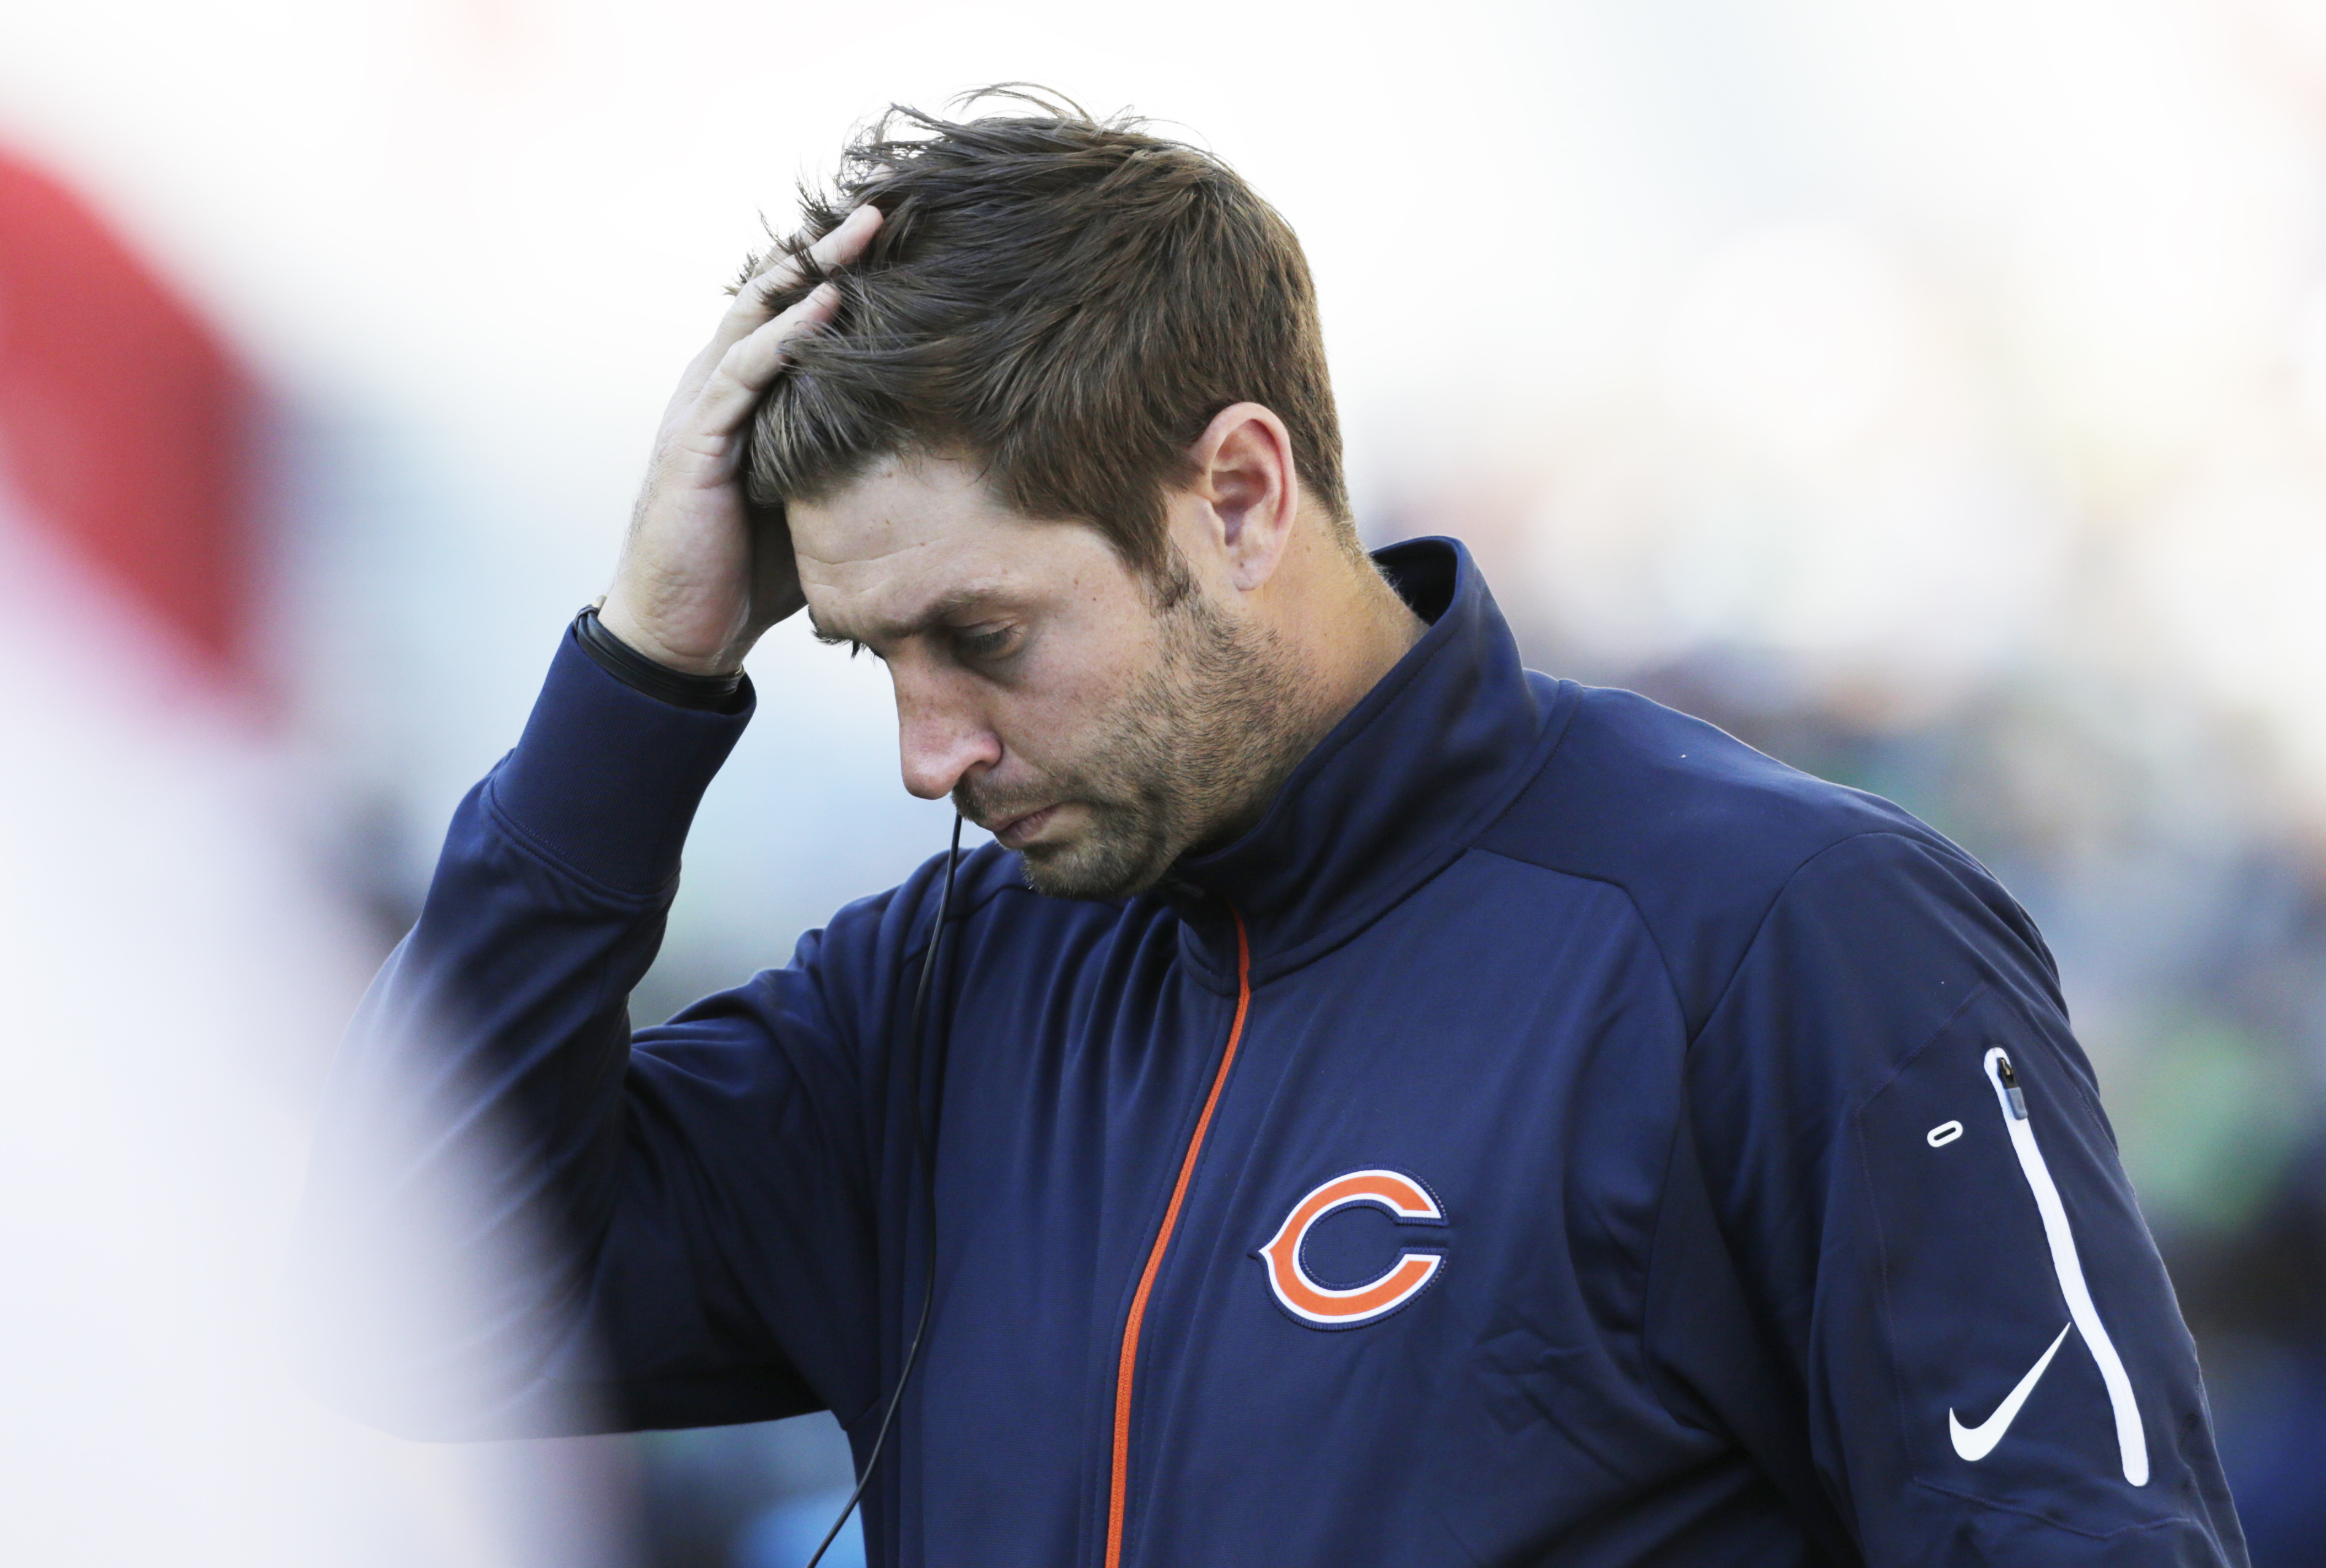 Jay Cutler, the King of Not Caring, still rules on Very